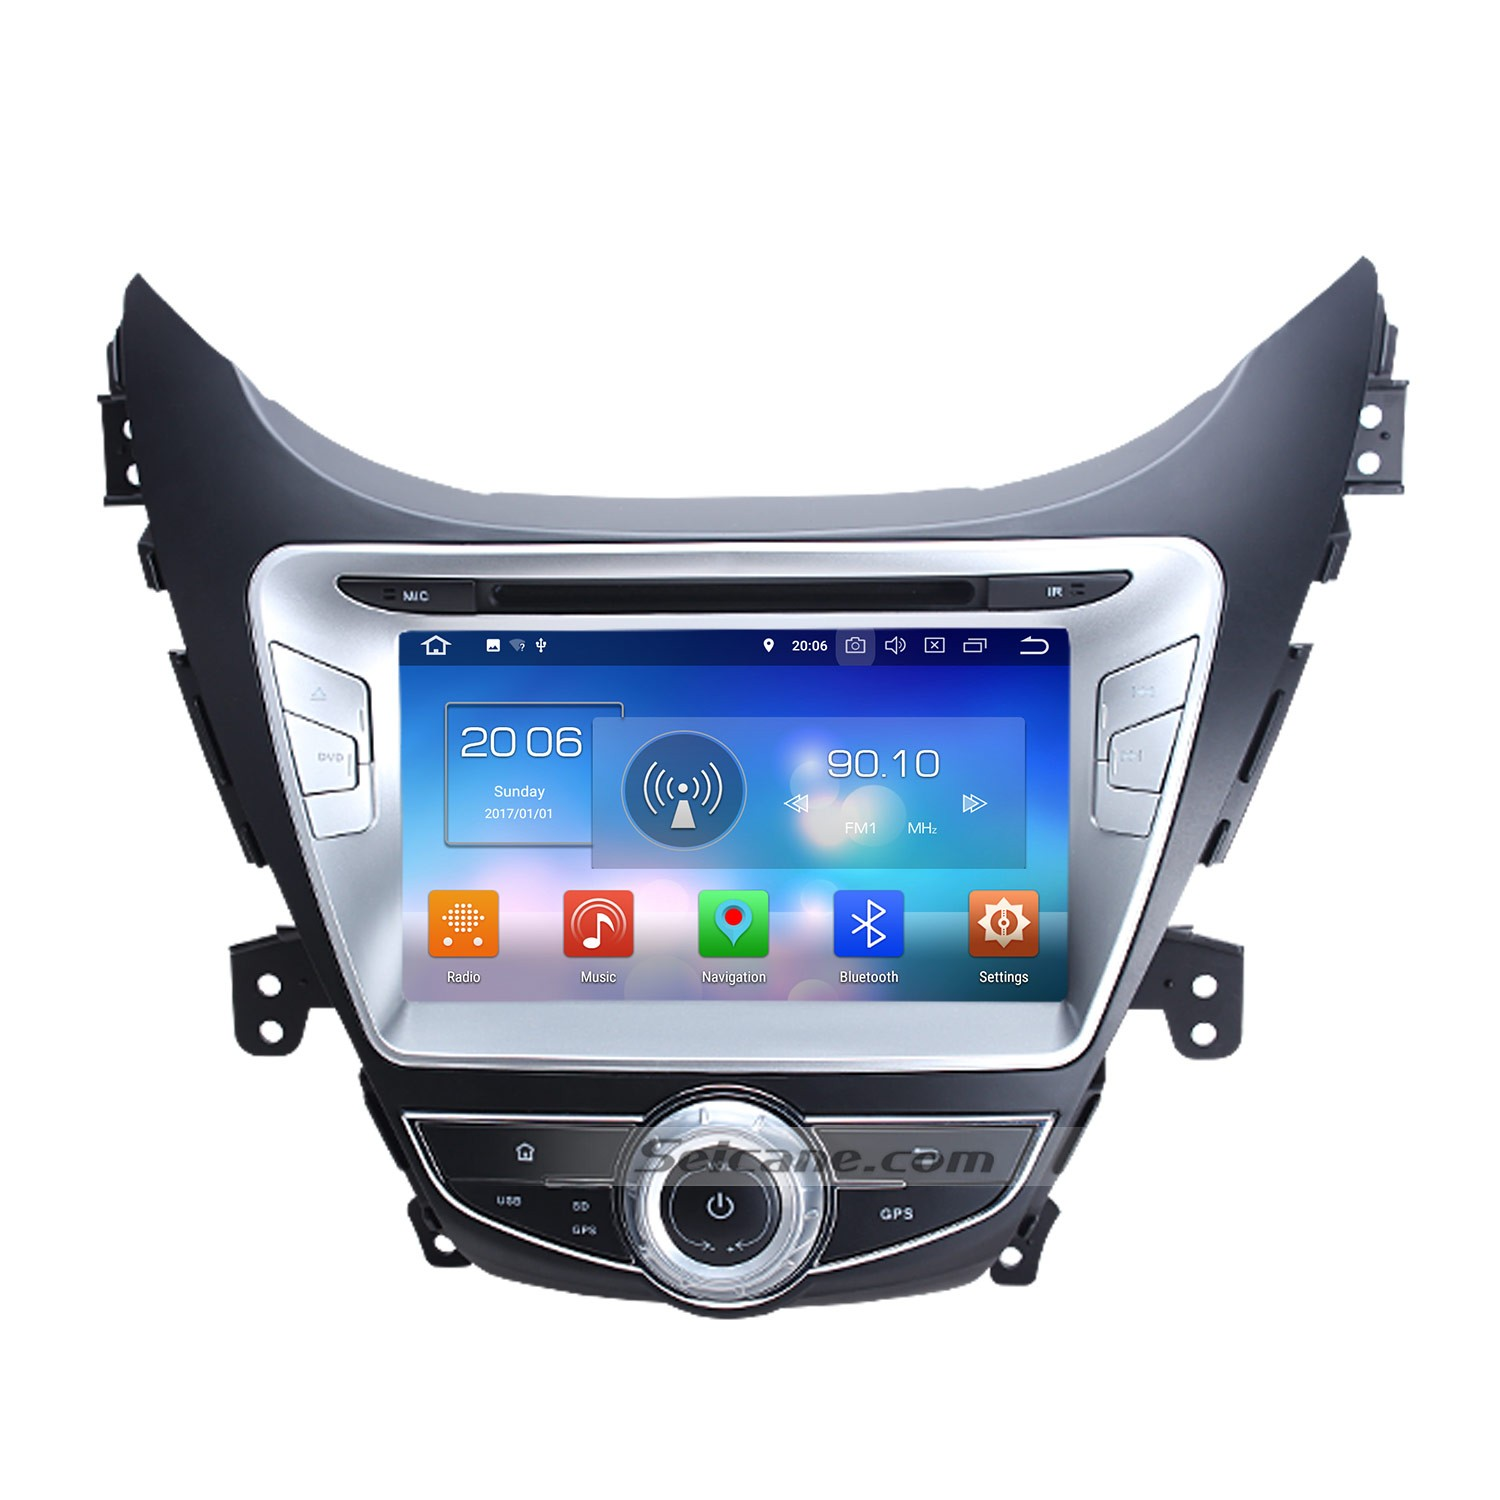 8 inch 2011 2012 2013 Hyundai Avante Android 8 0 DVD player GPS